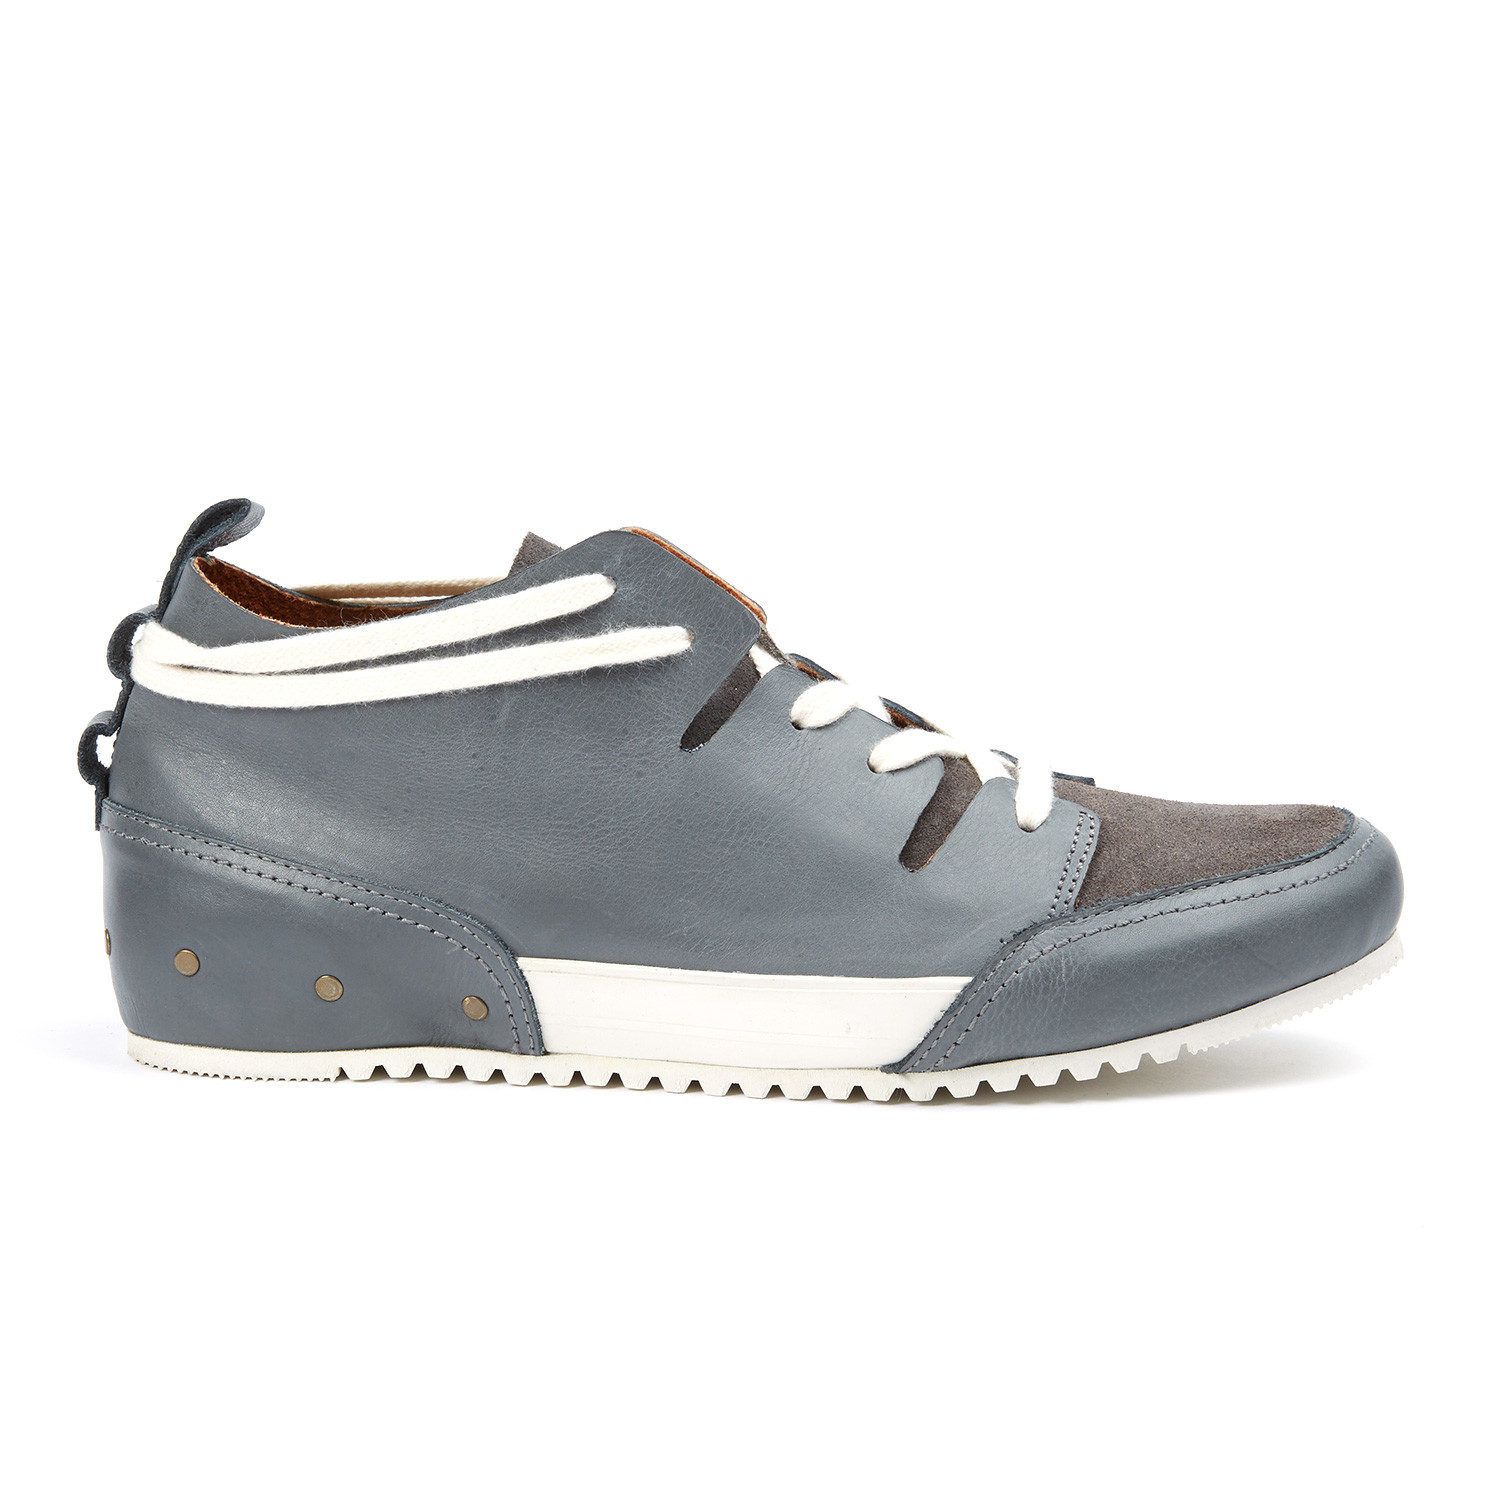 74b10f2c53a933 MCNDO    Champs Leather Sneaker    Grey (US  7) - MCNDO Shoes ...